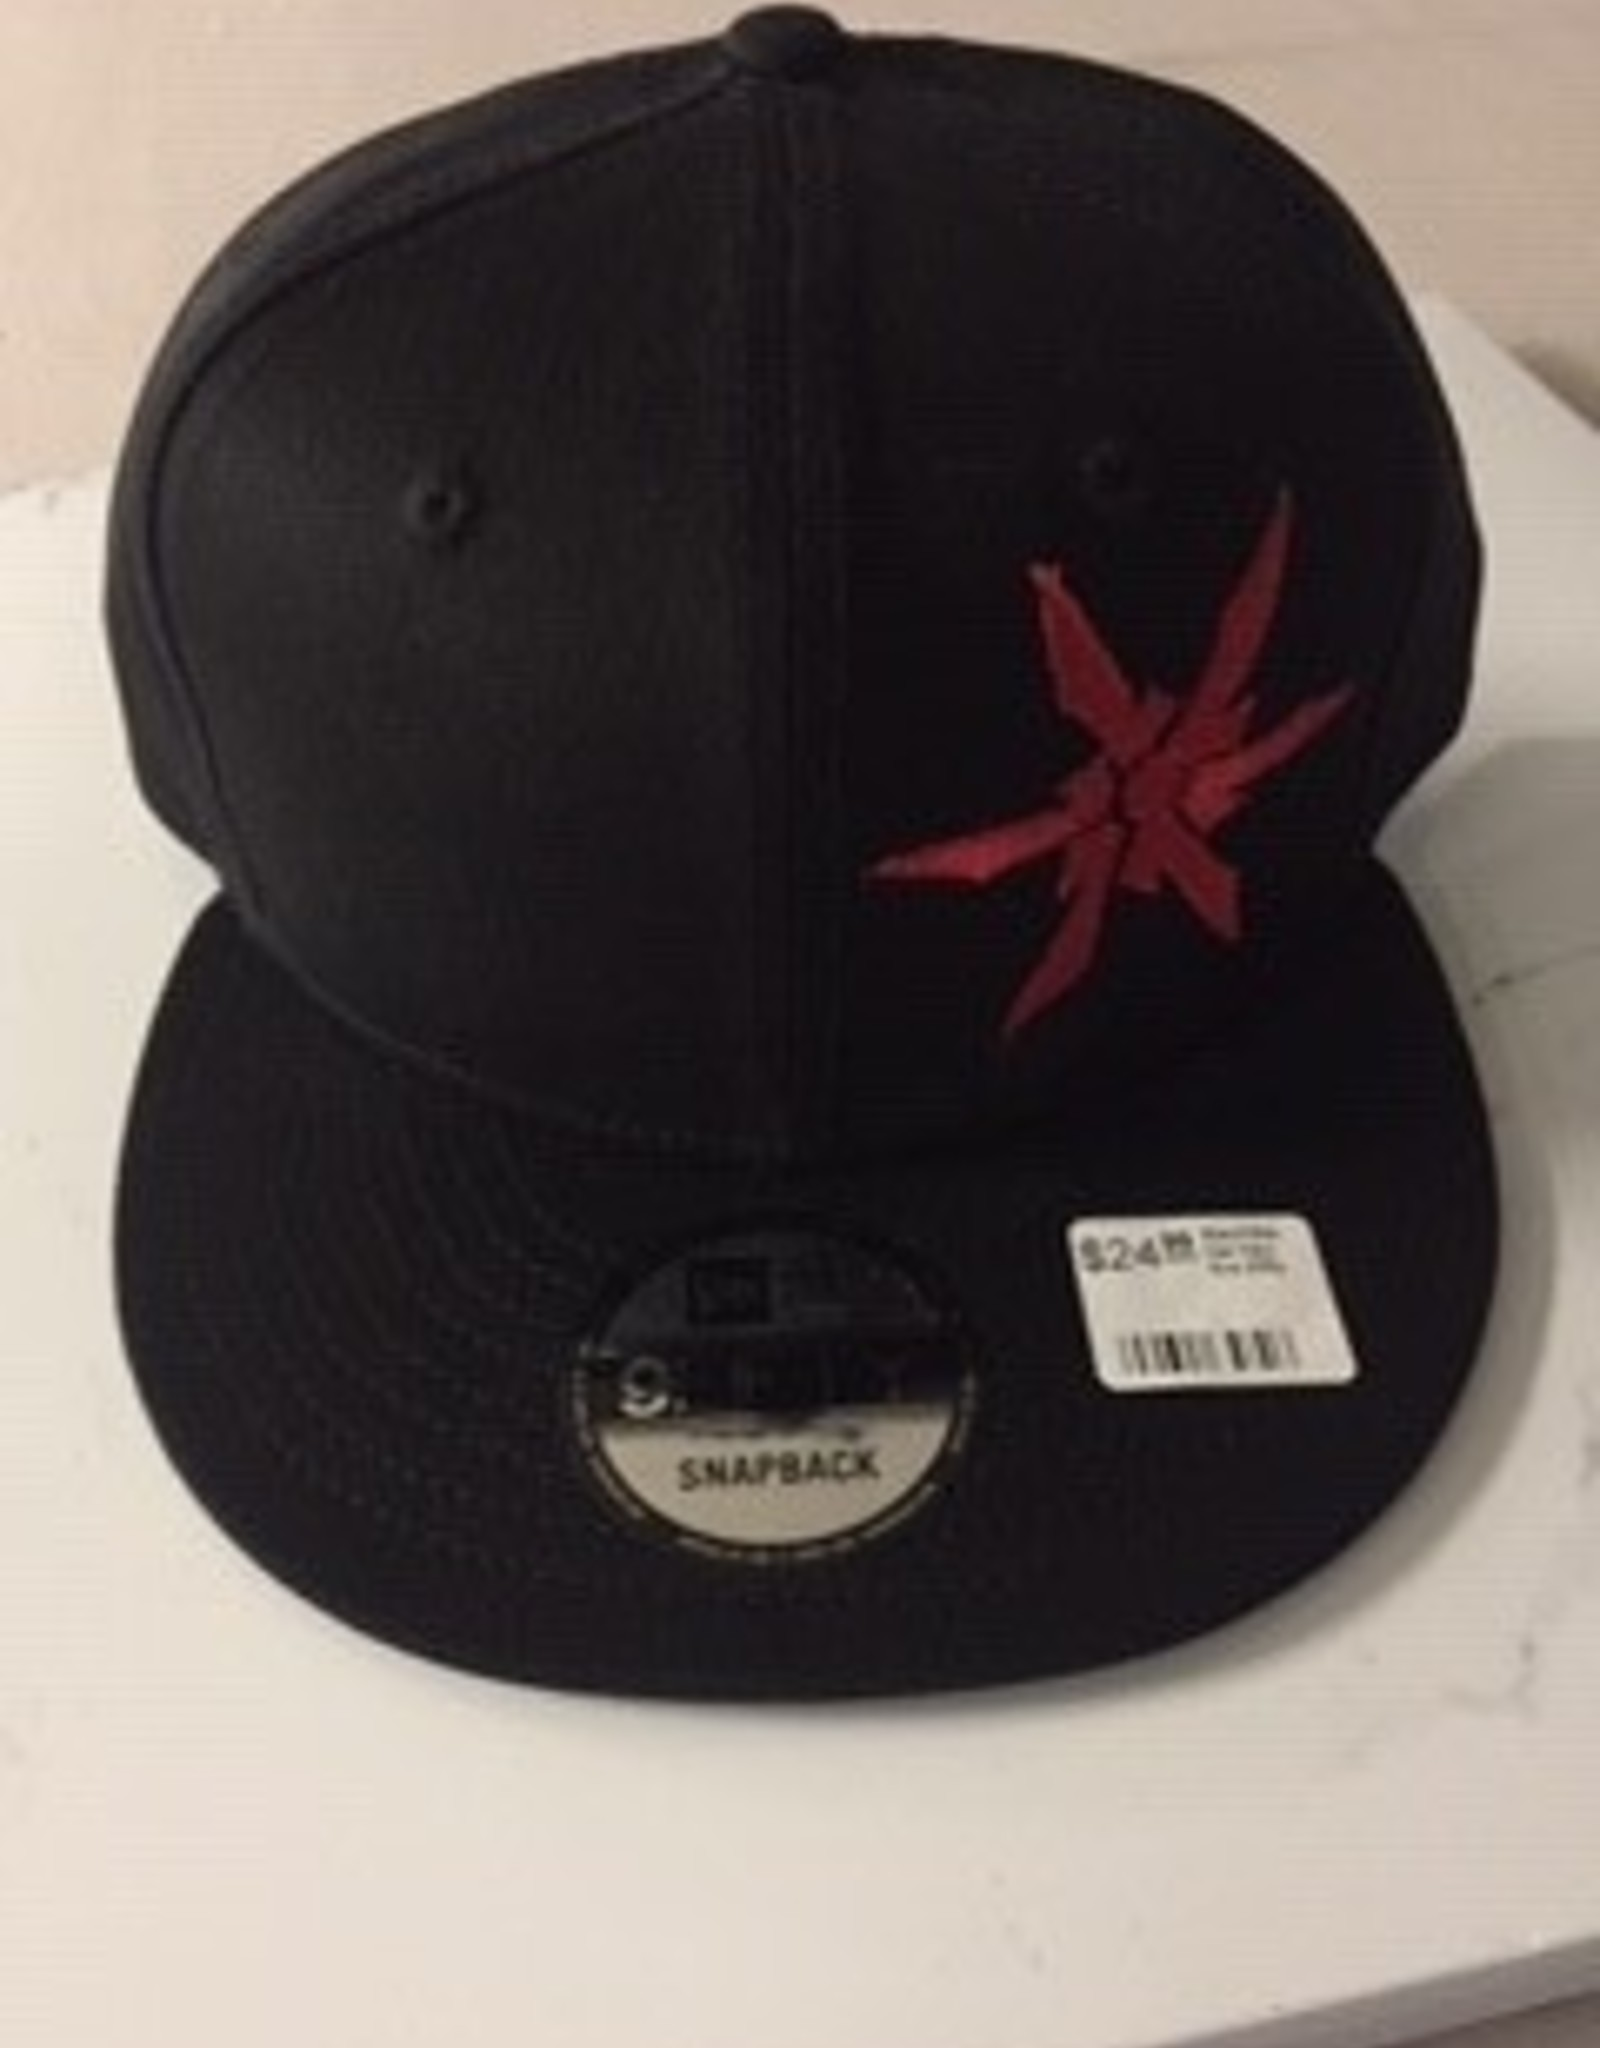 BlackStar Hat New Era 9fifty